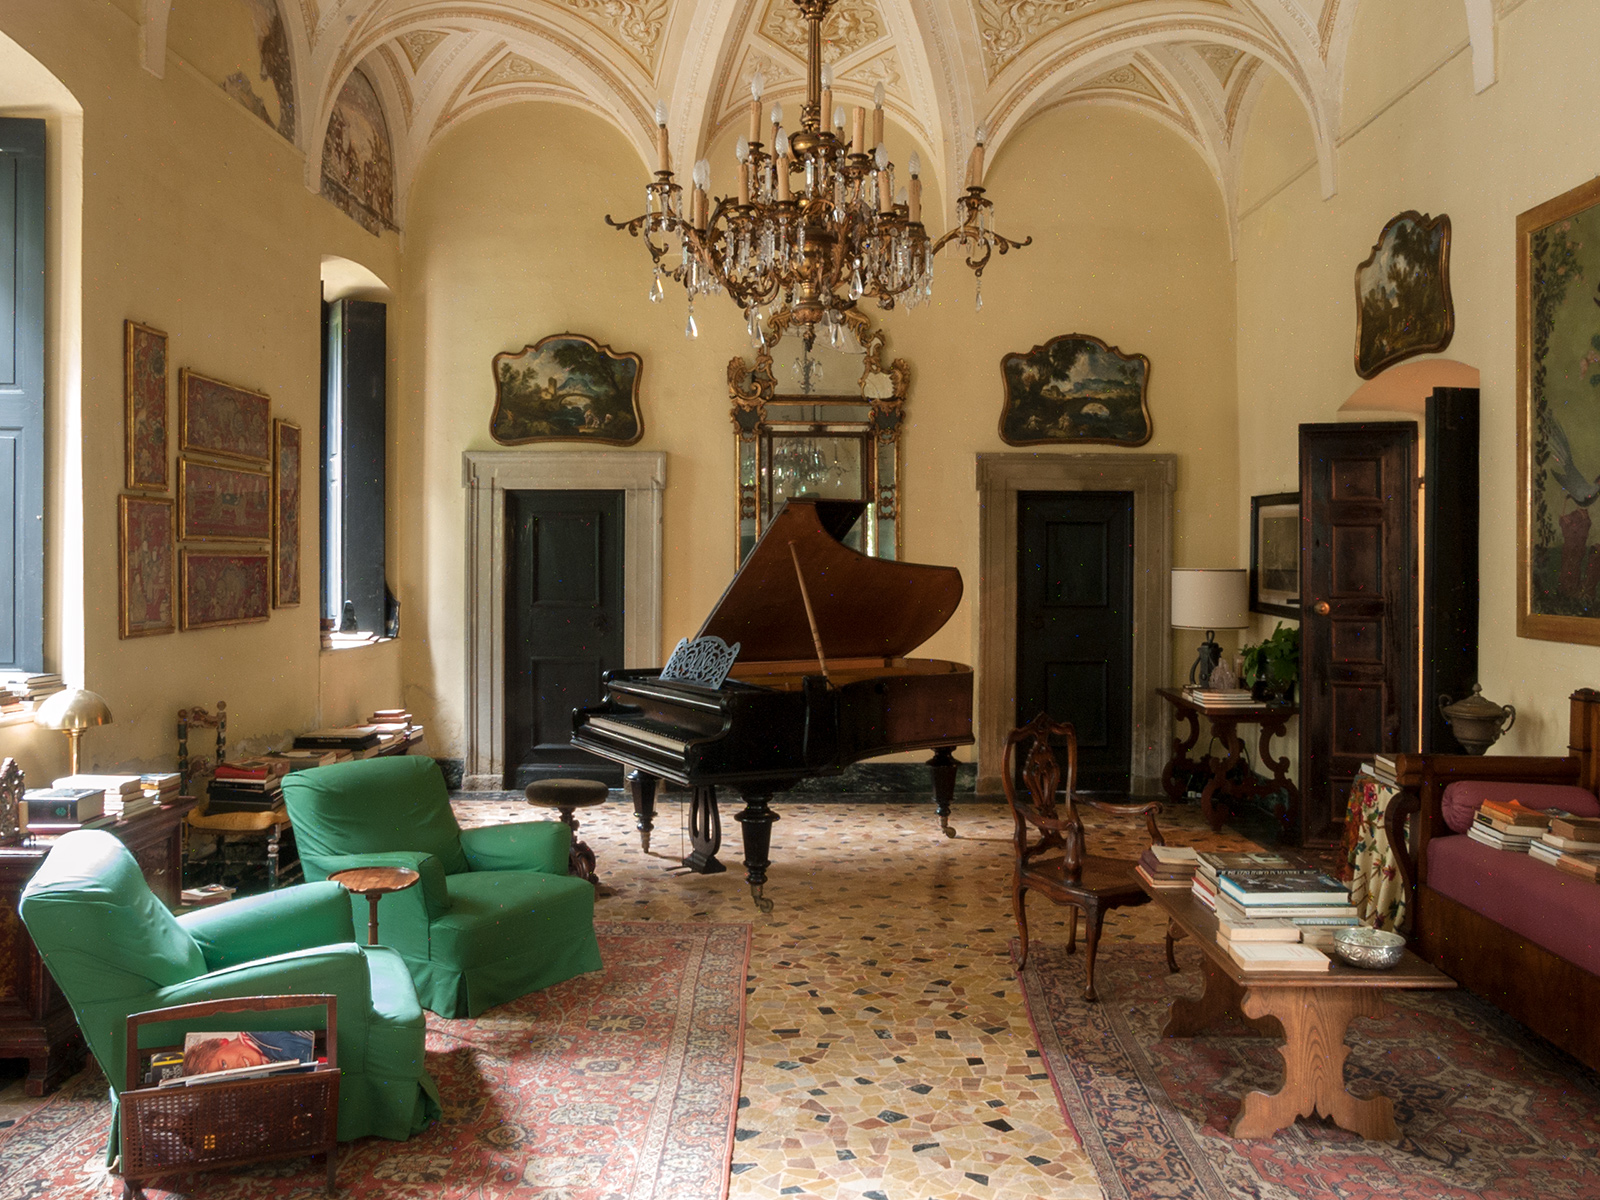 Villa Albergoni - the setting of Call Me by Your Name